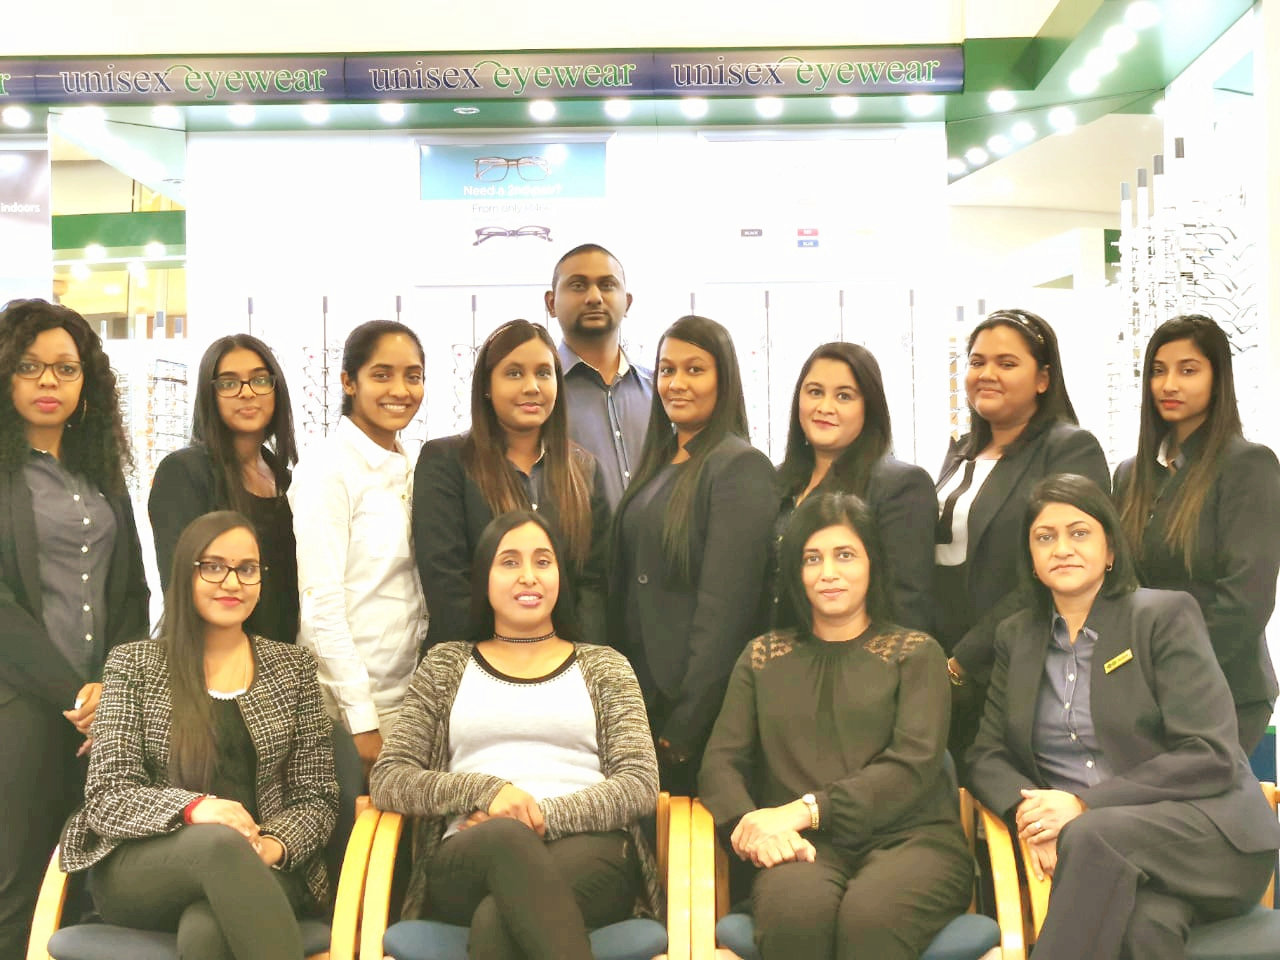 Optometrists Seated: Sudeshni, Amishka, Veni. Staff Seated: Nishana (Manageress), Standing: Gaynitha (Debtors), Geetasha, Nokulunga, Helen, Reeshana, Vanshika, Sachen, Luvisha, Catherine.